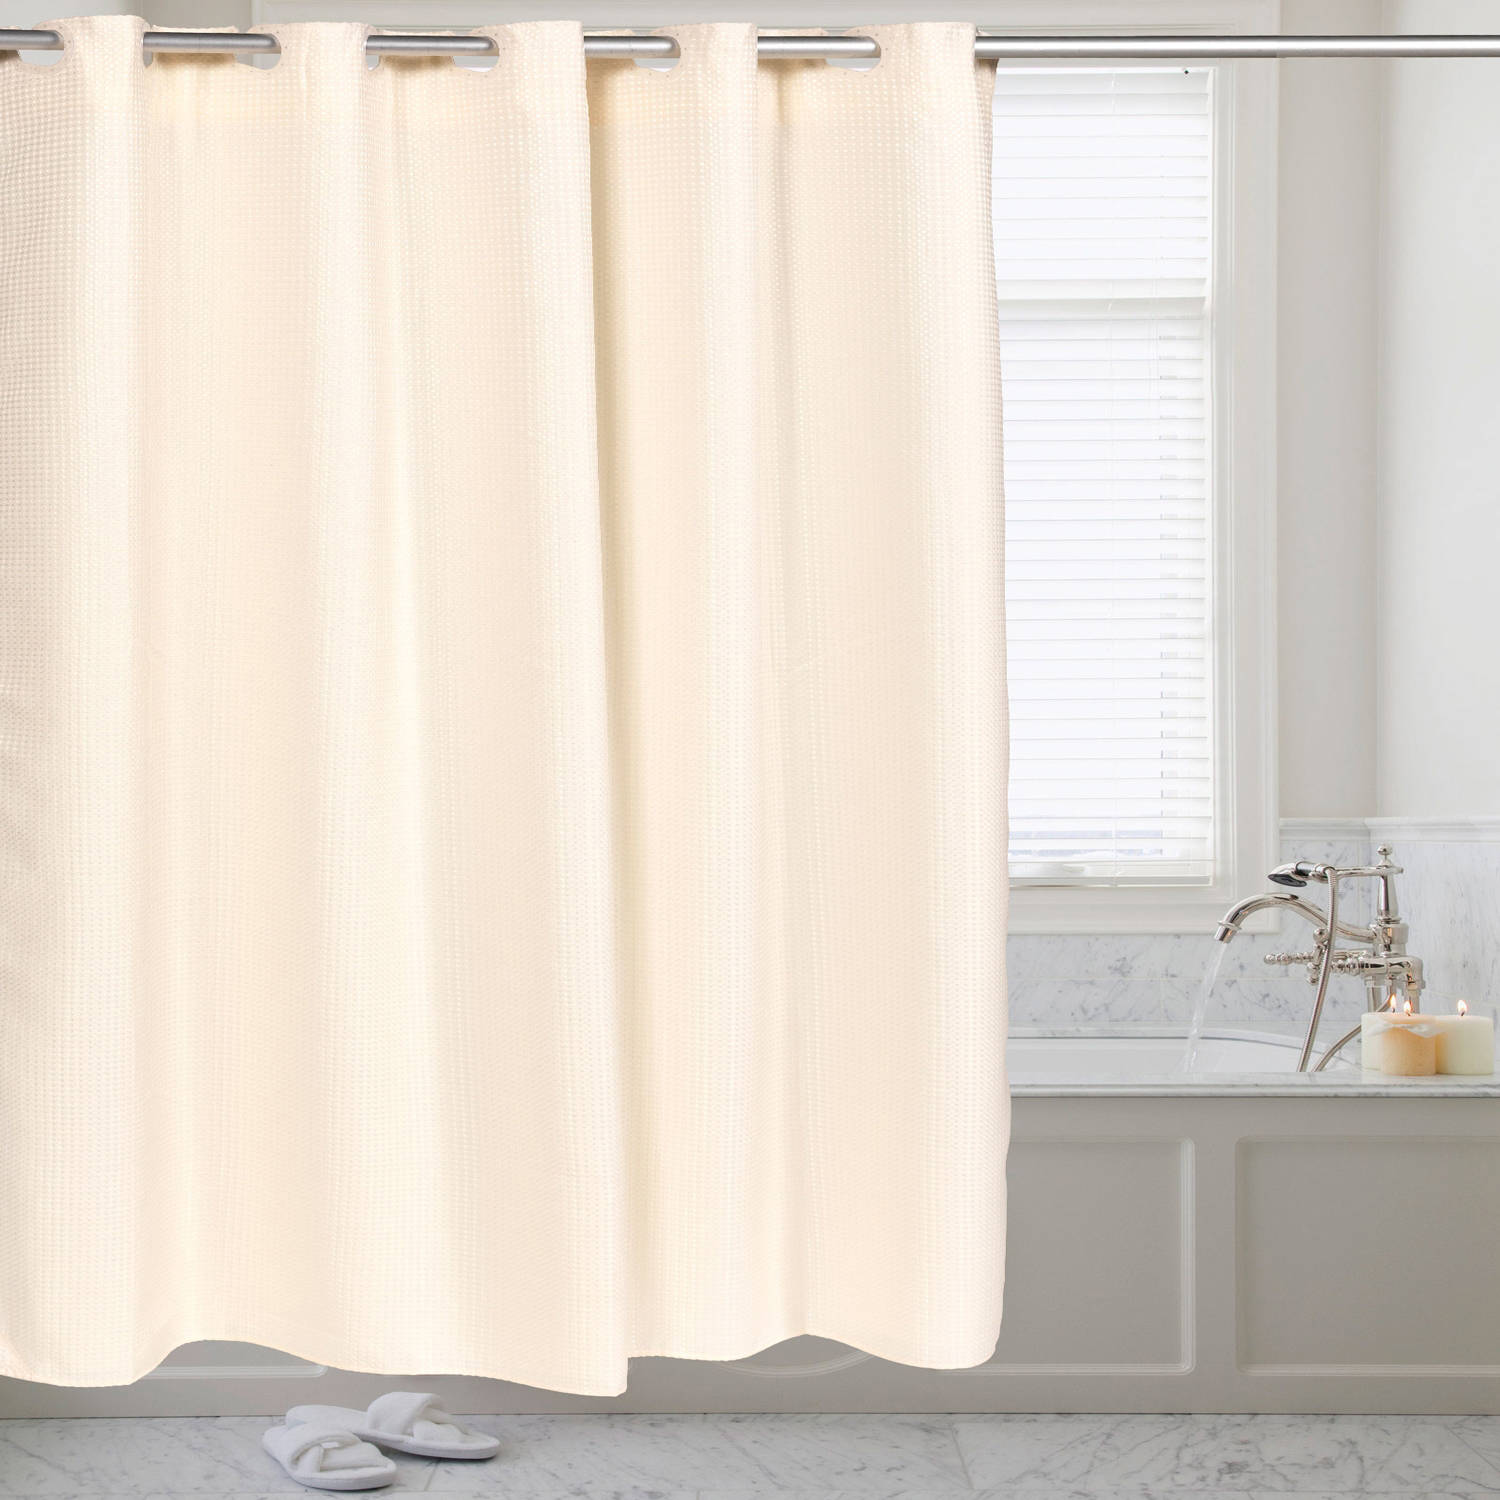 fabric shower curtain waffle weave hookless with snap off liner 70 x 75 walmart com